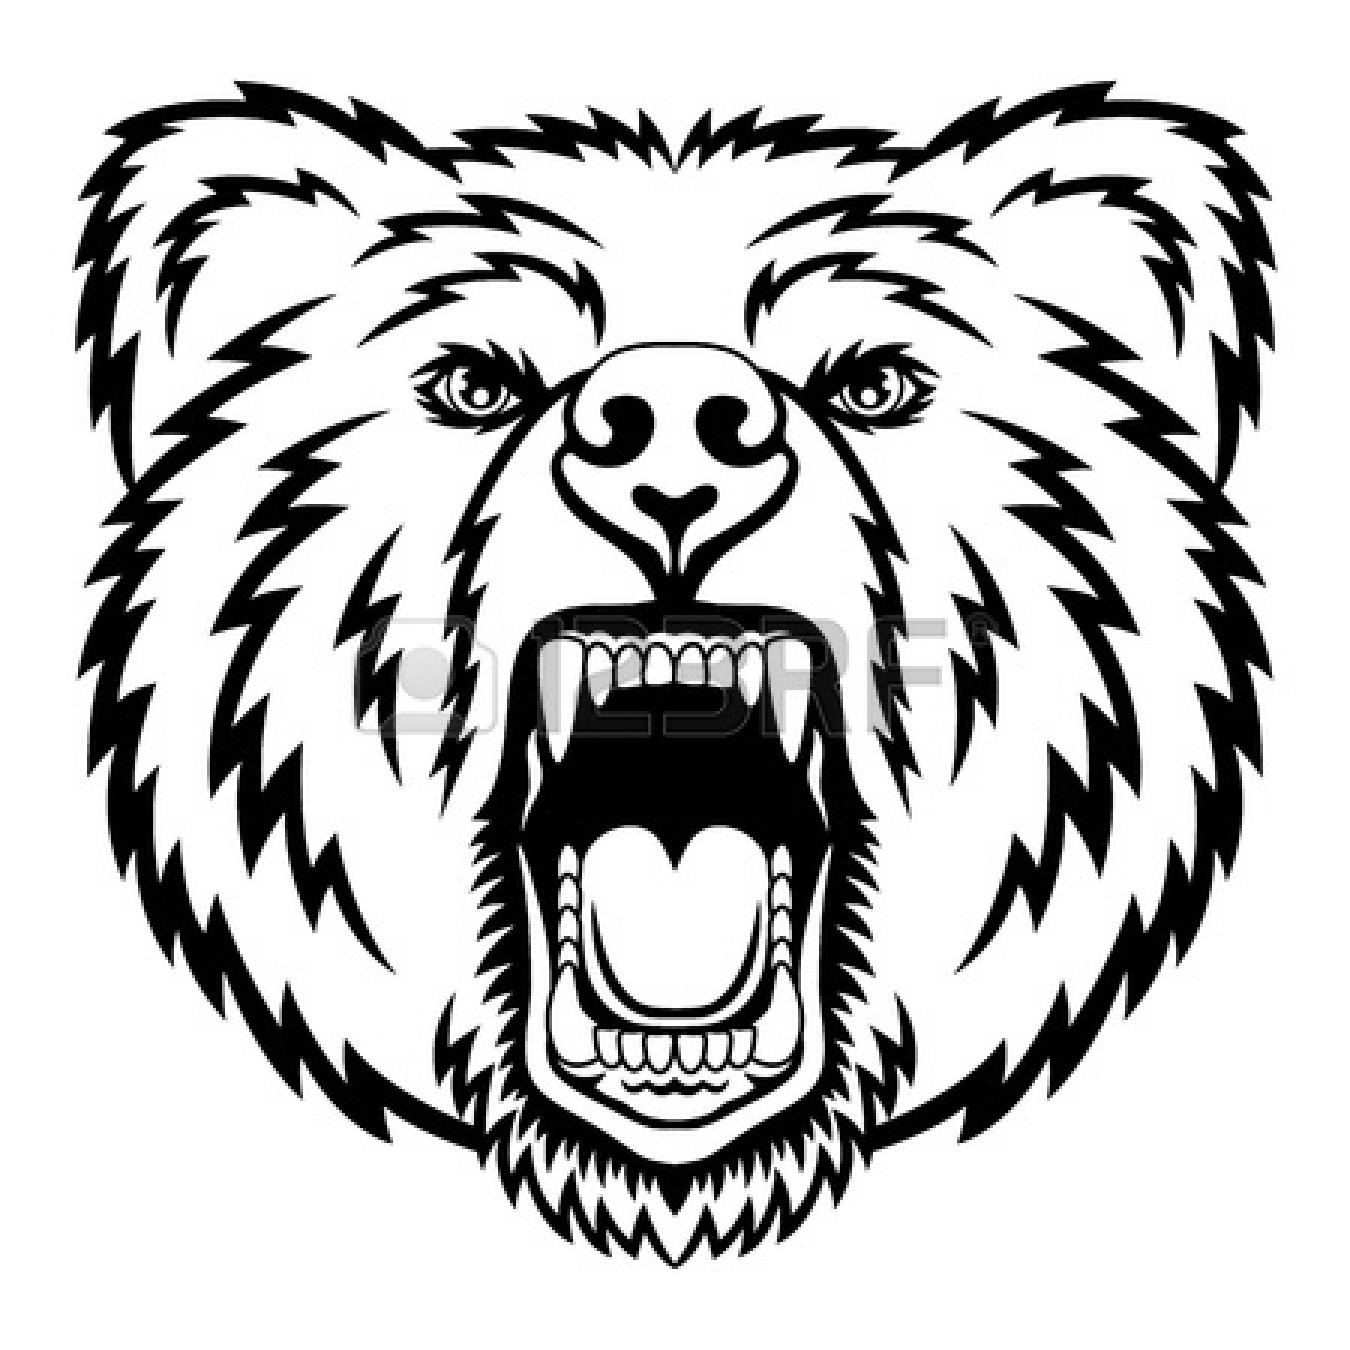 1350x1350 Polar Bear Face Drawing How To Draw Grizzly Bear Drawing Image